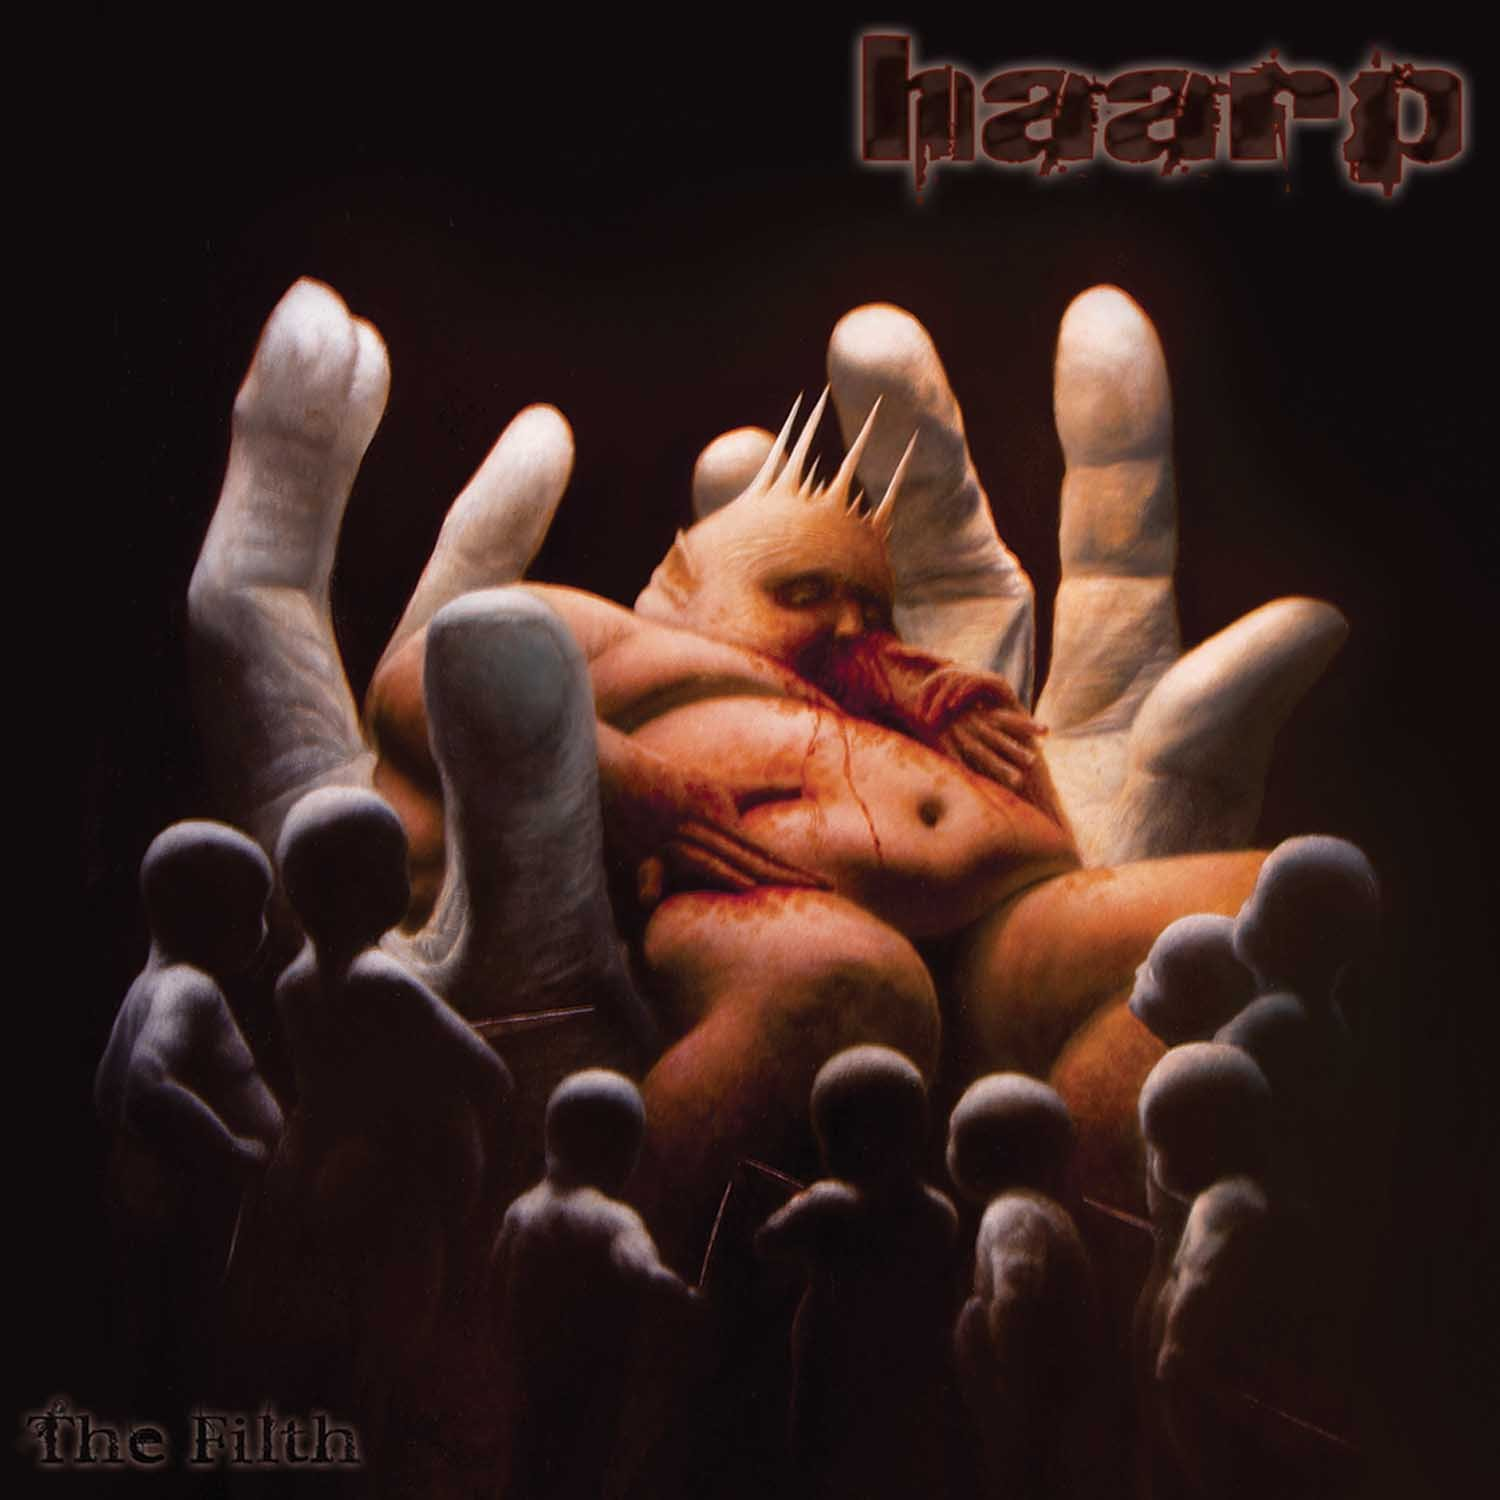 CD : haarp - The Filth (CD)